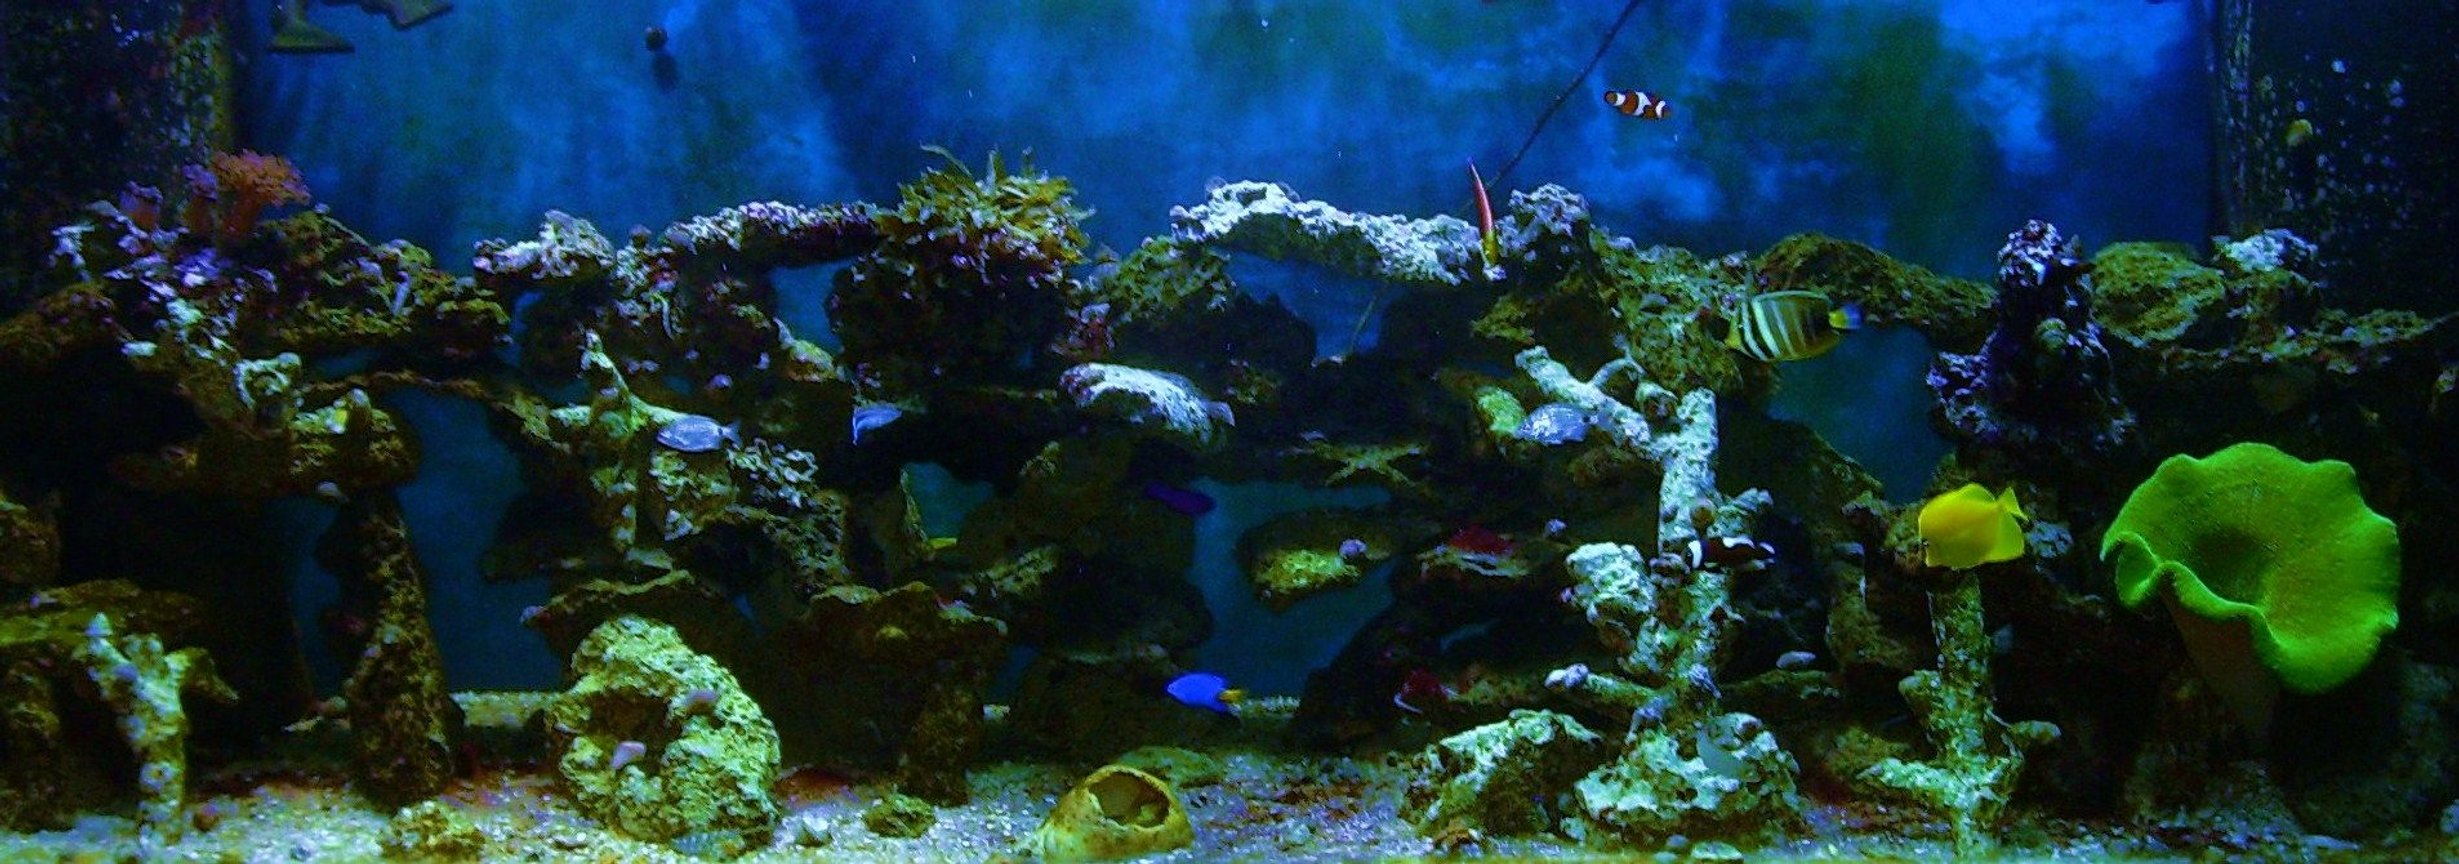 180 gallons saltwater fish tank (mostly fish, little/no live coral) - 180g 1 yellow tang , 1 powder blue tang , 1sailfin tang , 1 docter tang , 3 lawnmowers , 1 radiant wrasse , 1 yellow wrasse , 1 cleaner wrasse , 2 false perculer clowns , 2 saddleback clowns , 1 strawberry basslet , 1 yellow tail blue damsel ,1 purple and yellow damsel ,100s of snails and crabs ,1 sand sifting star , 1 serpent star ,1 green carpet , 1 coral banded shrimp , 1 pepper mint shrimp